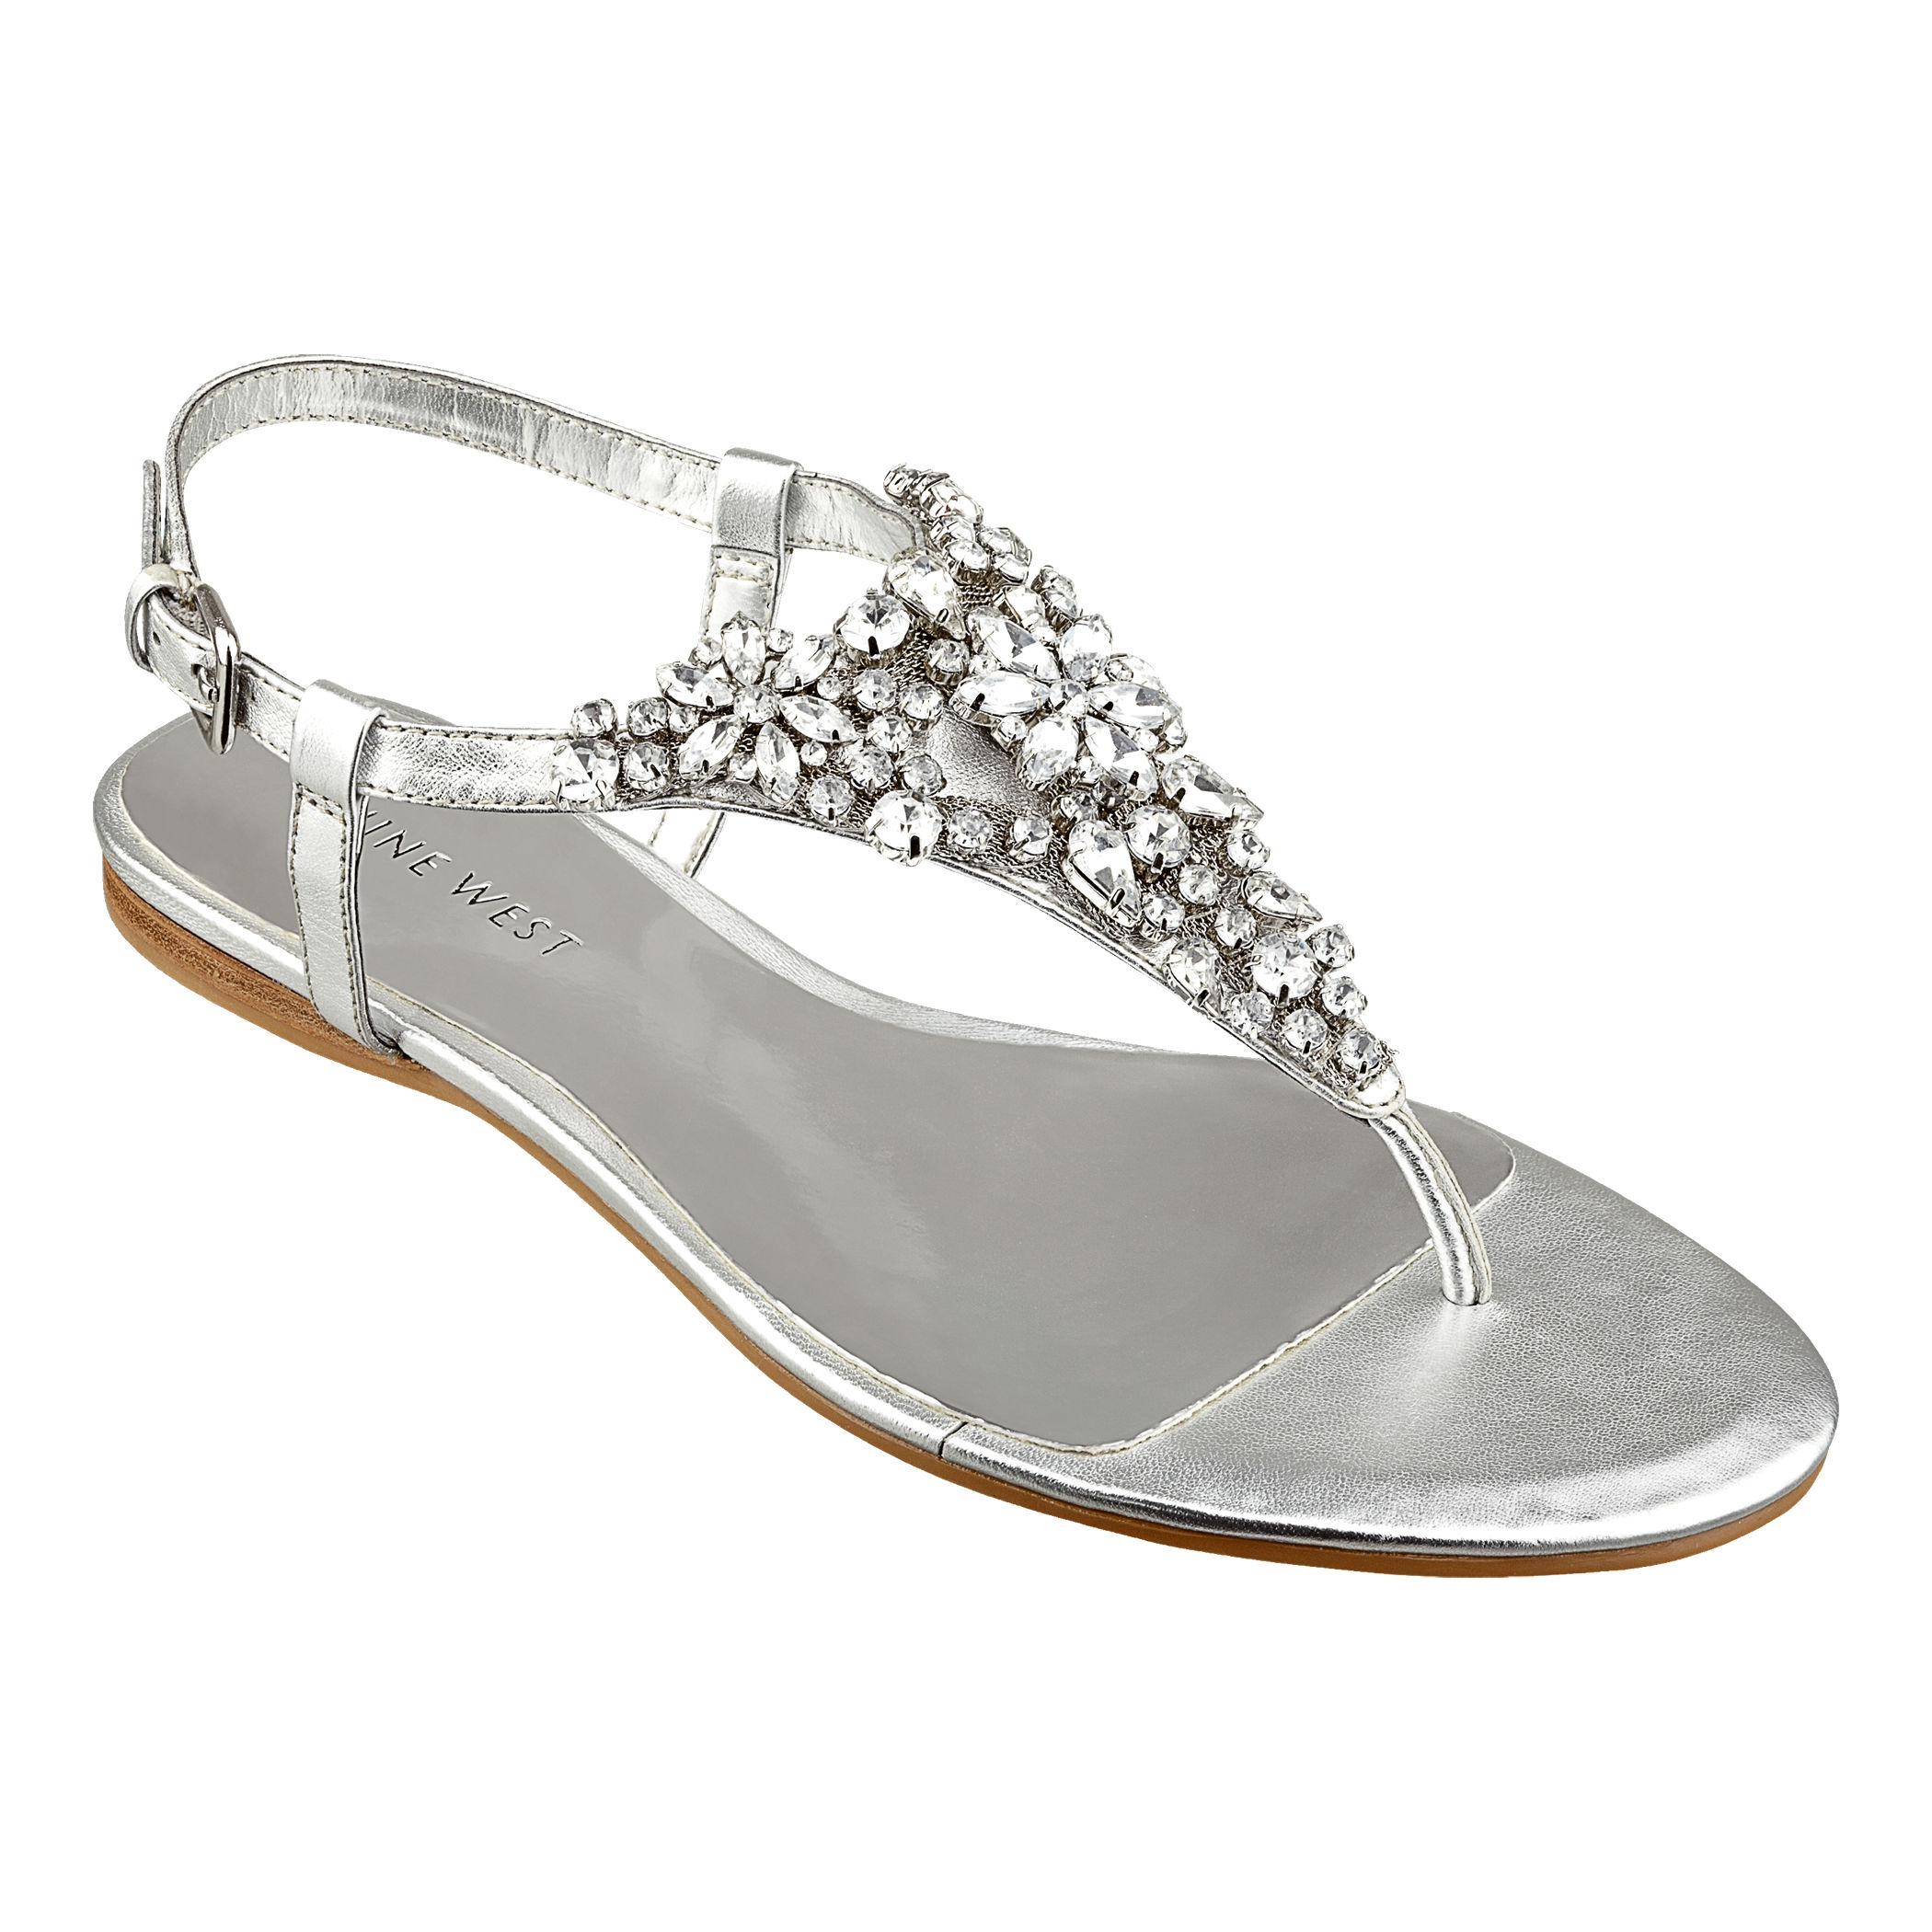 Silver A Flat Dress Sandals The – Ye2widh9 About Bridalamp; Formal All JKuT31clF